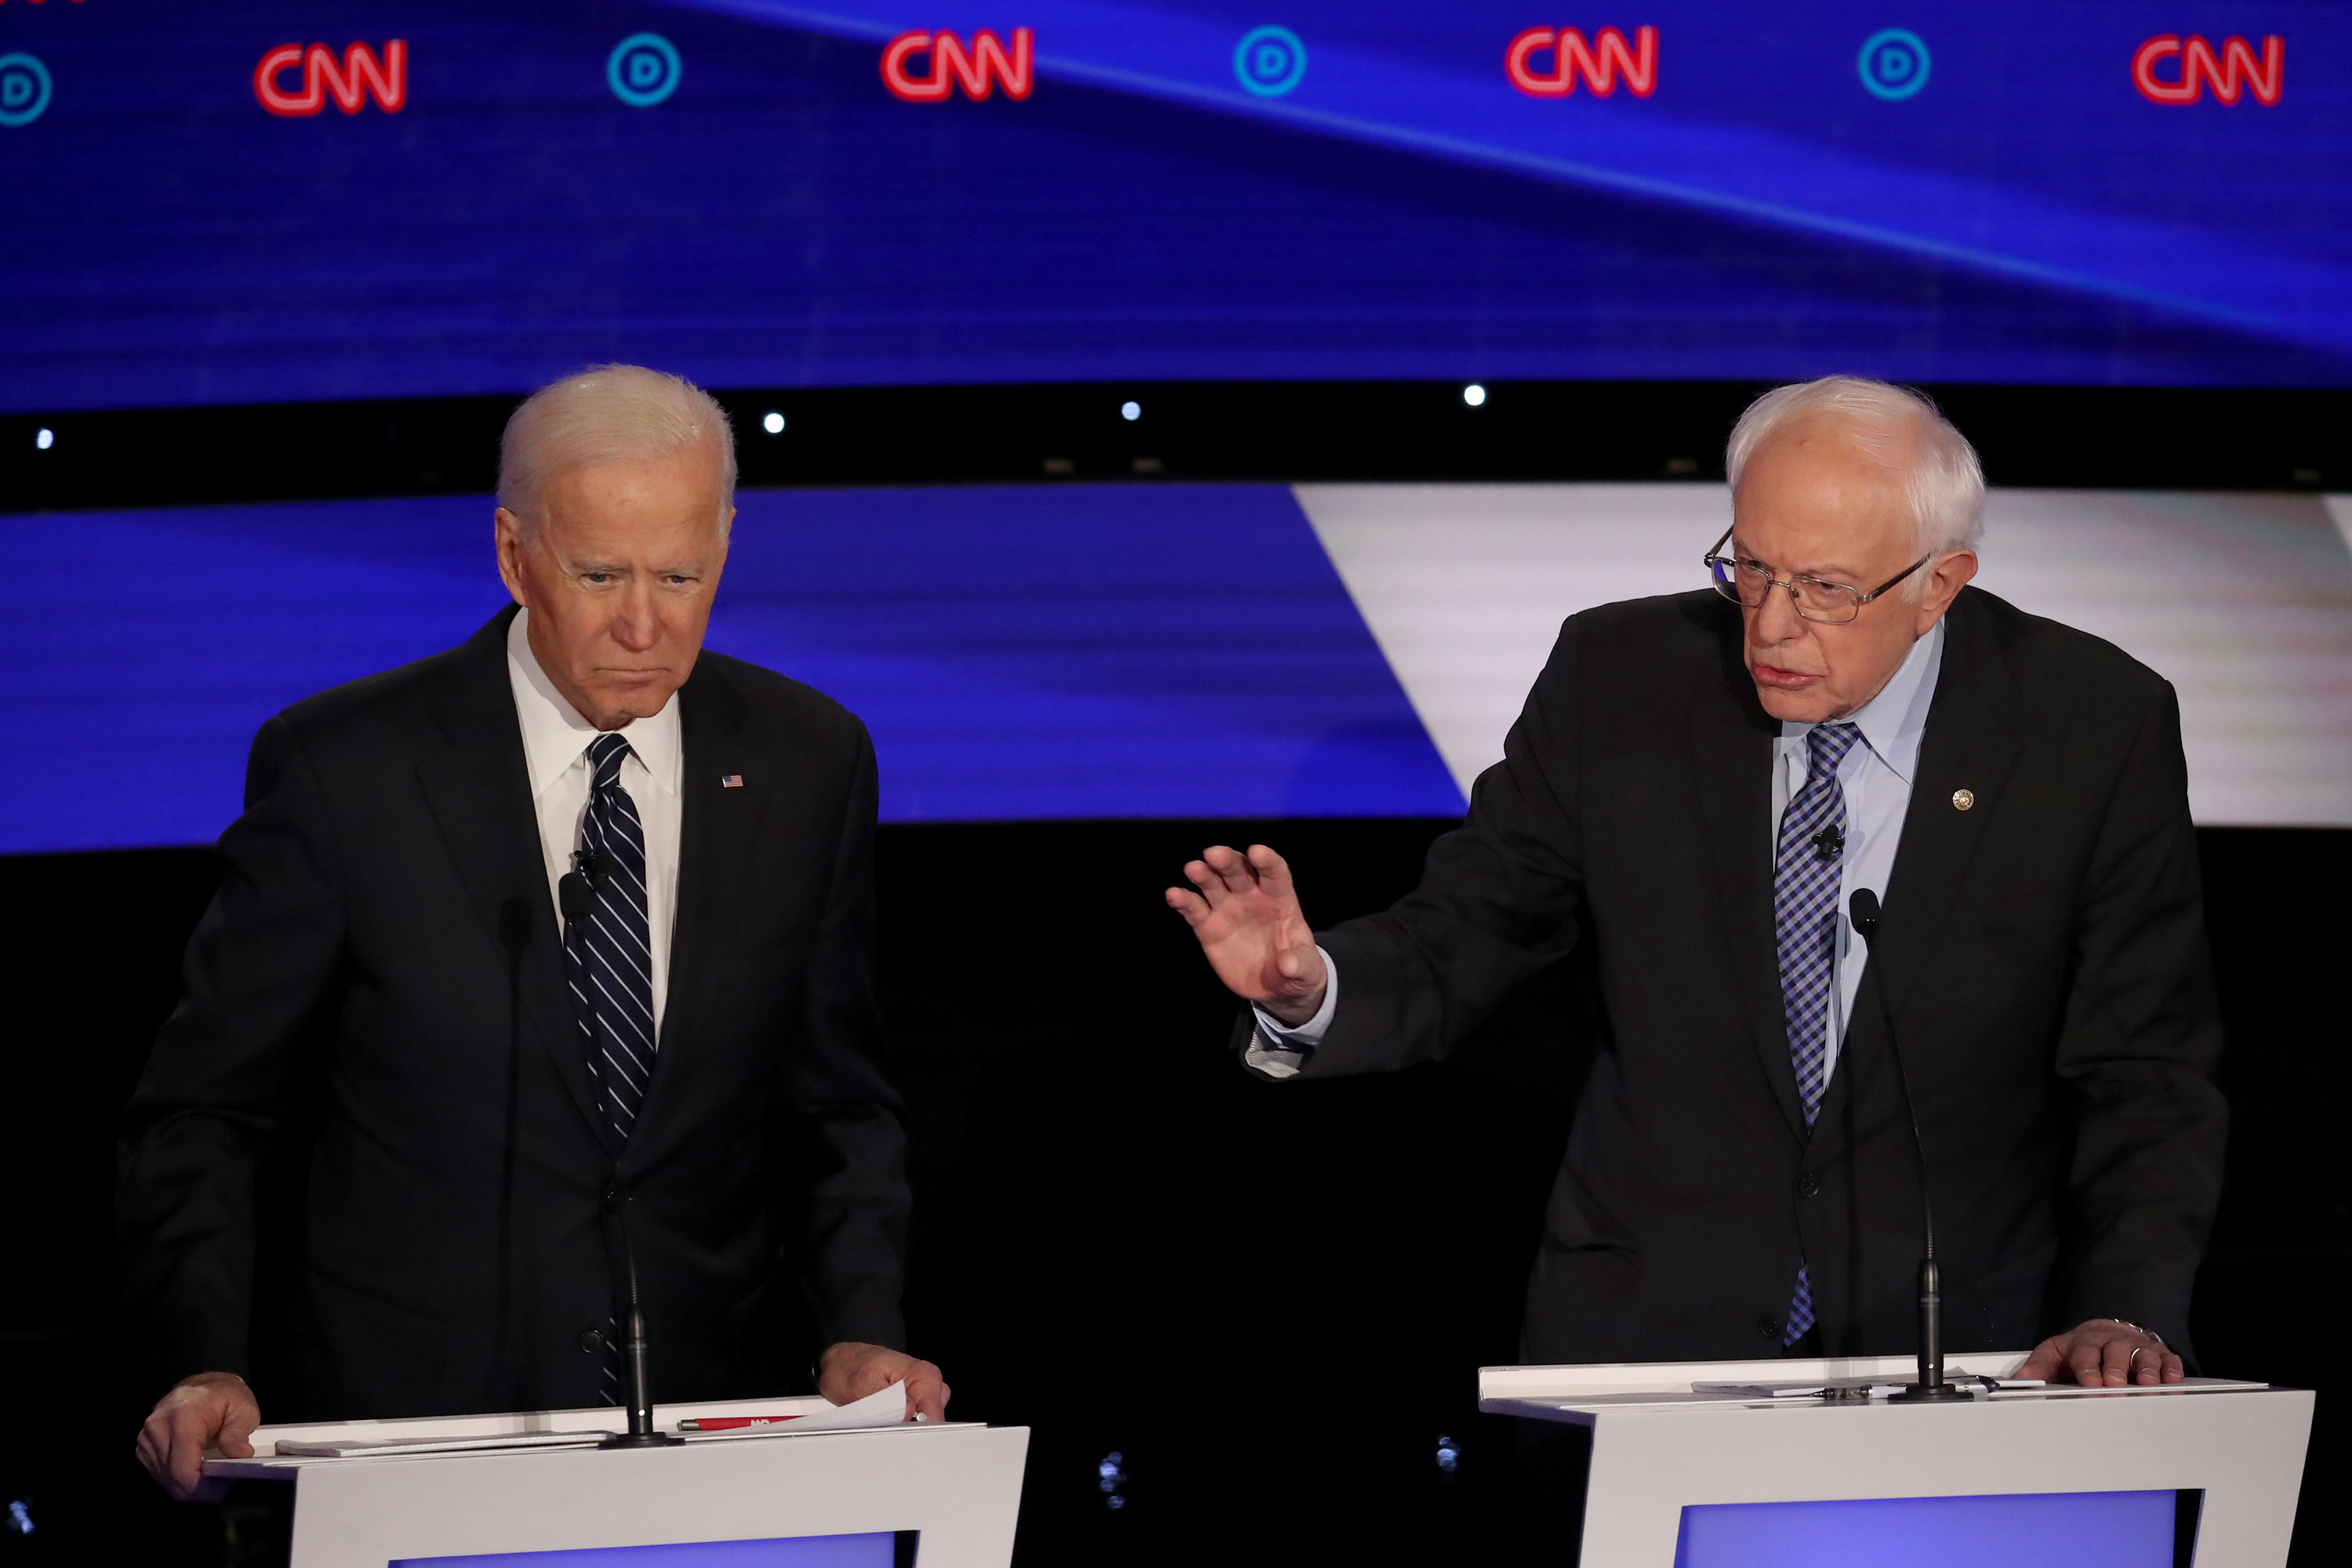 Sanders attacks Biden's record on social security as primary race heats up ahead of Iowa